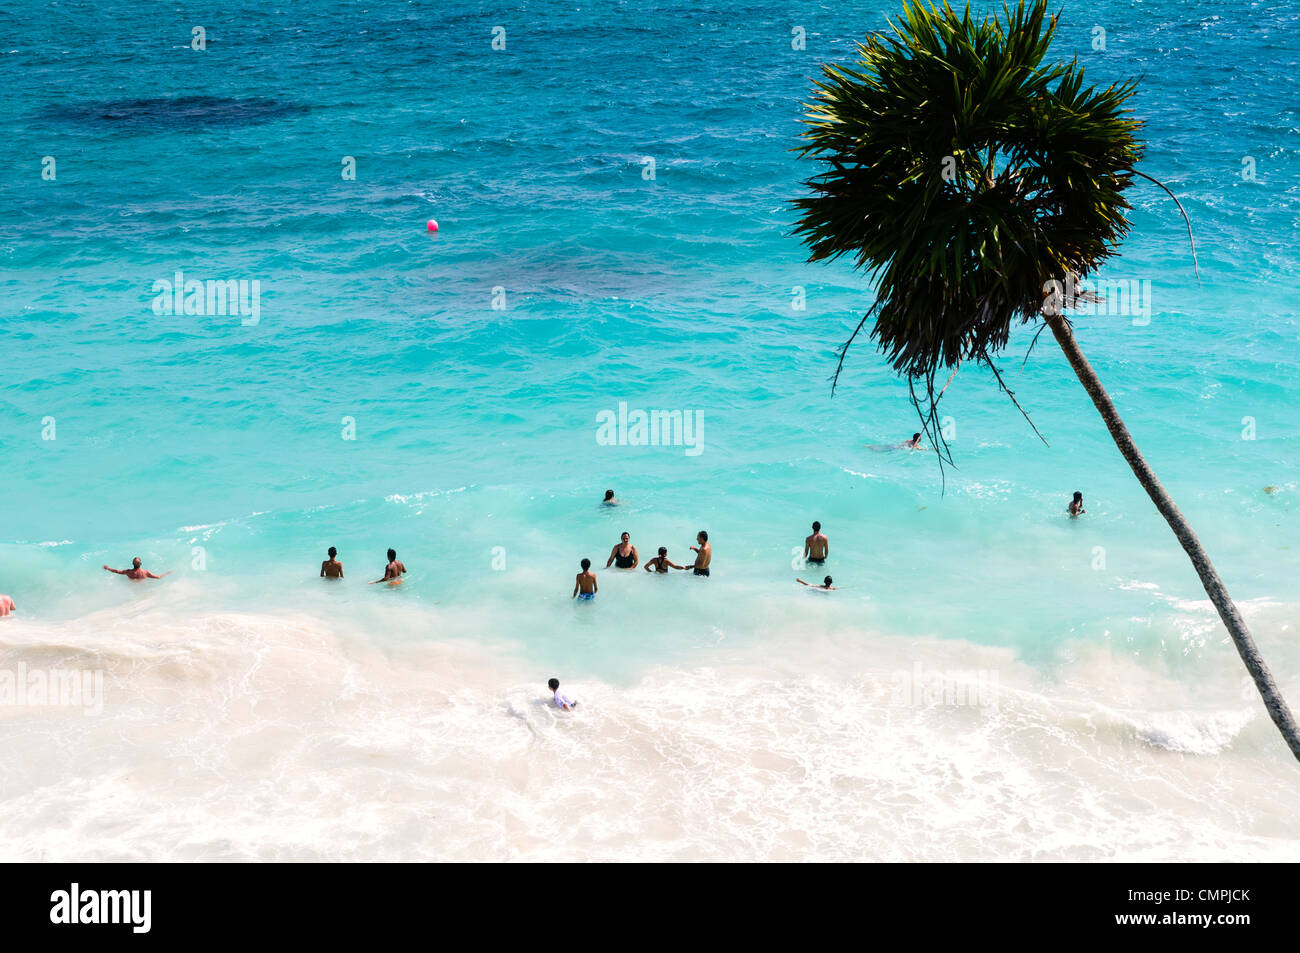 TULUM, Mexico - People swimming in the Caribbean Sea from one of the beautiful beaches next to the Maya civilizations - Stock Image